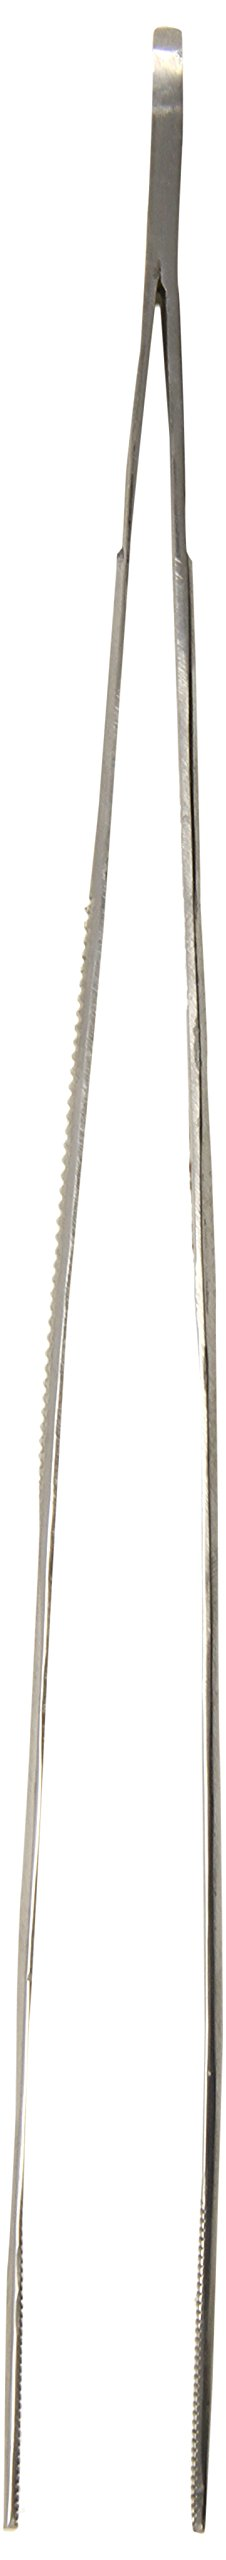 TAMSCO Thumb Tweezers 10-Inch Serrated Stainless Steel Serrated Blunt Point